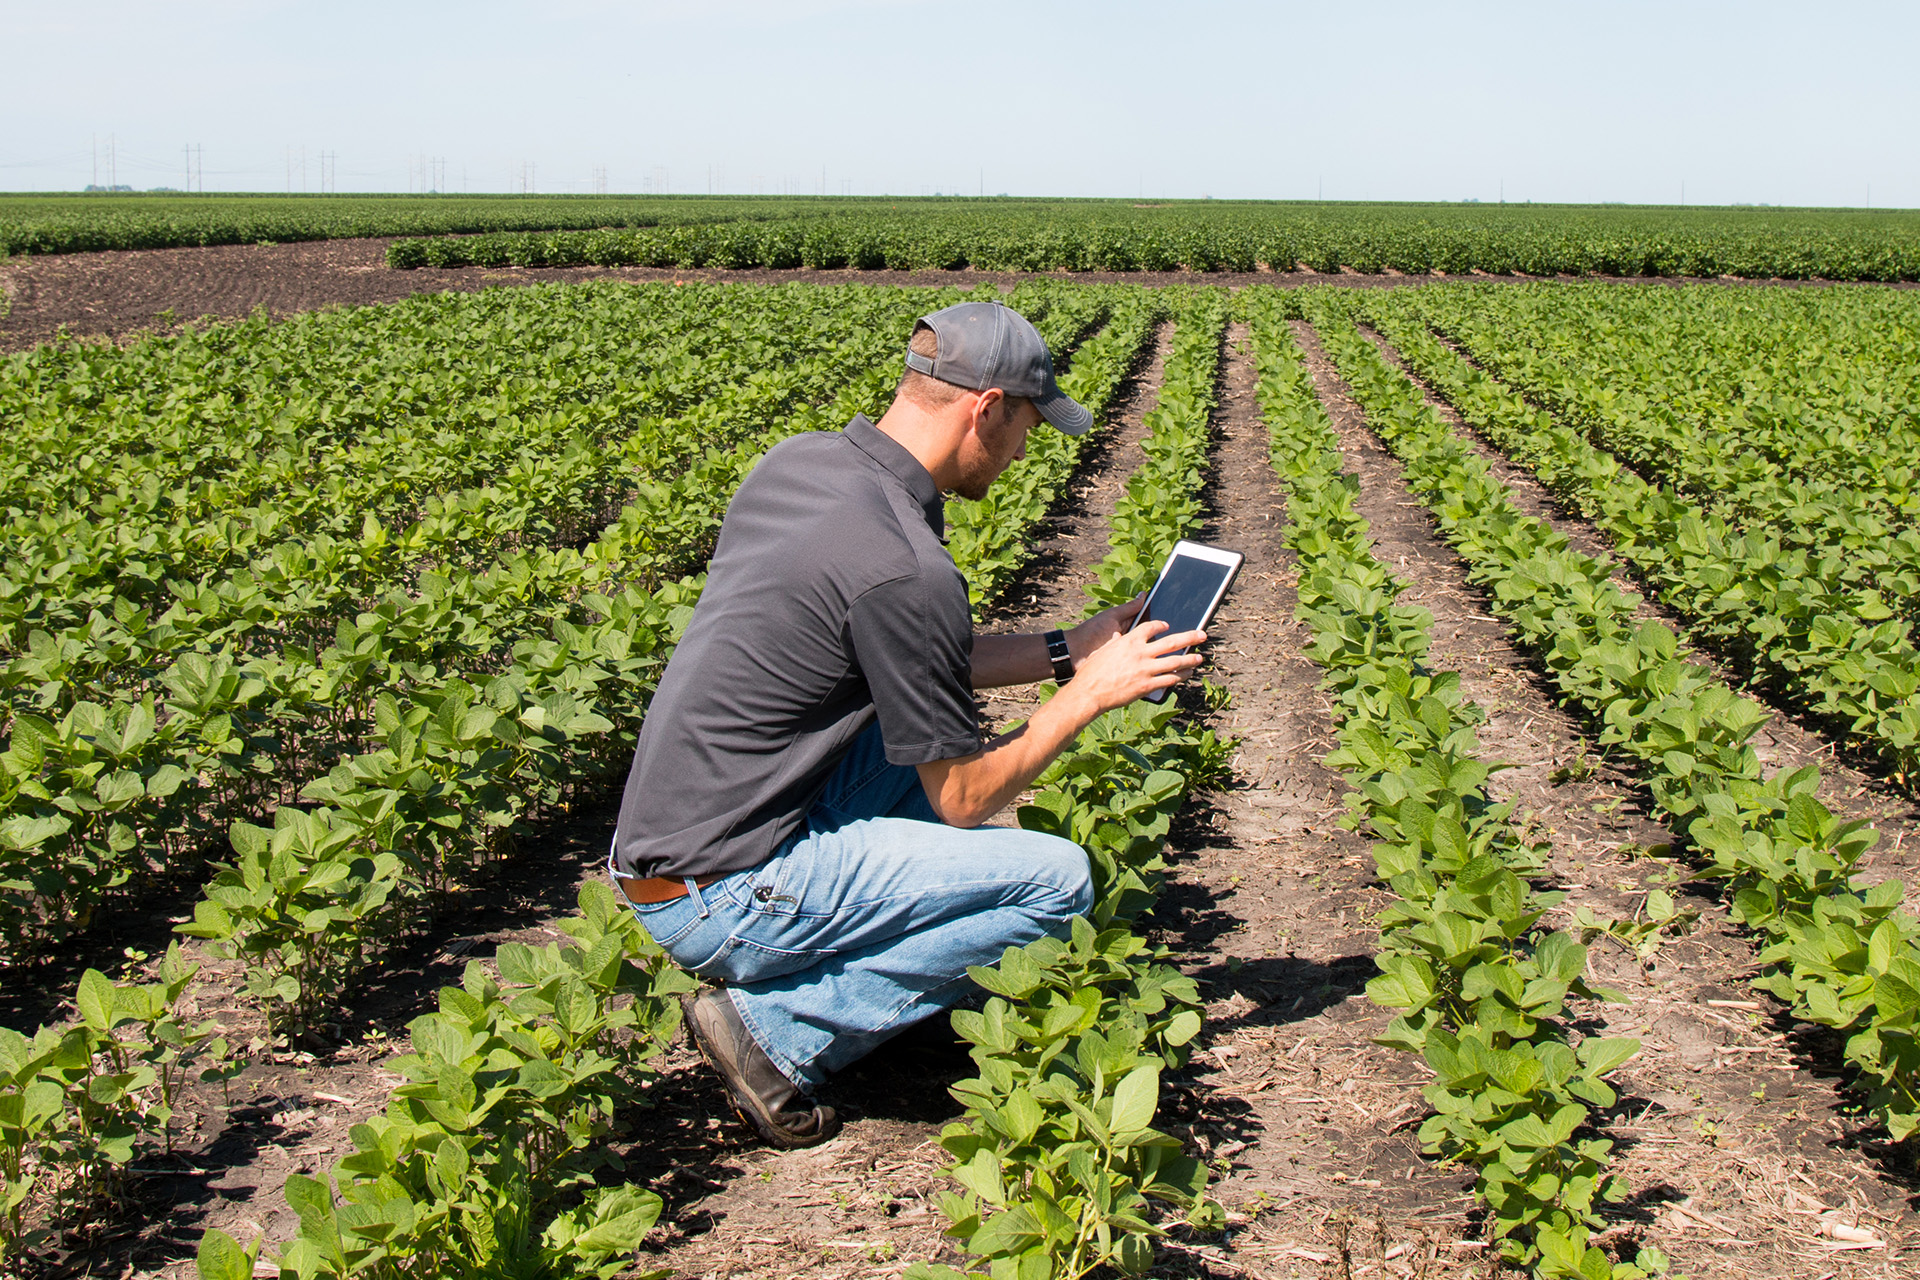 Farmer entering data on a tablet in a field